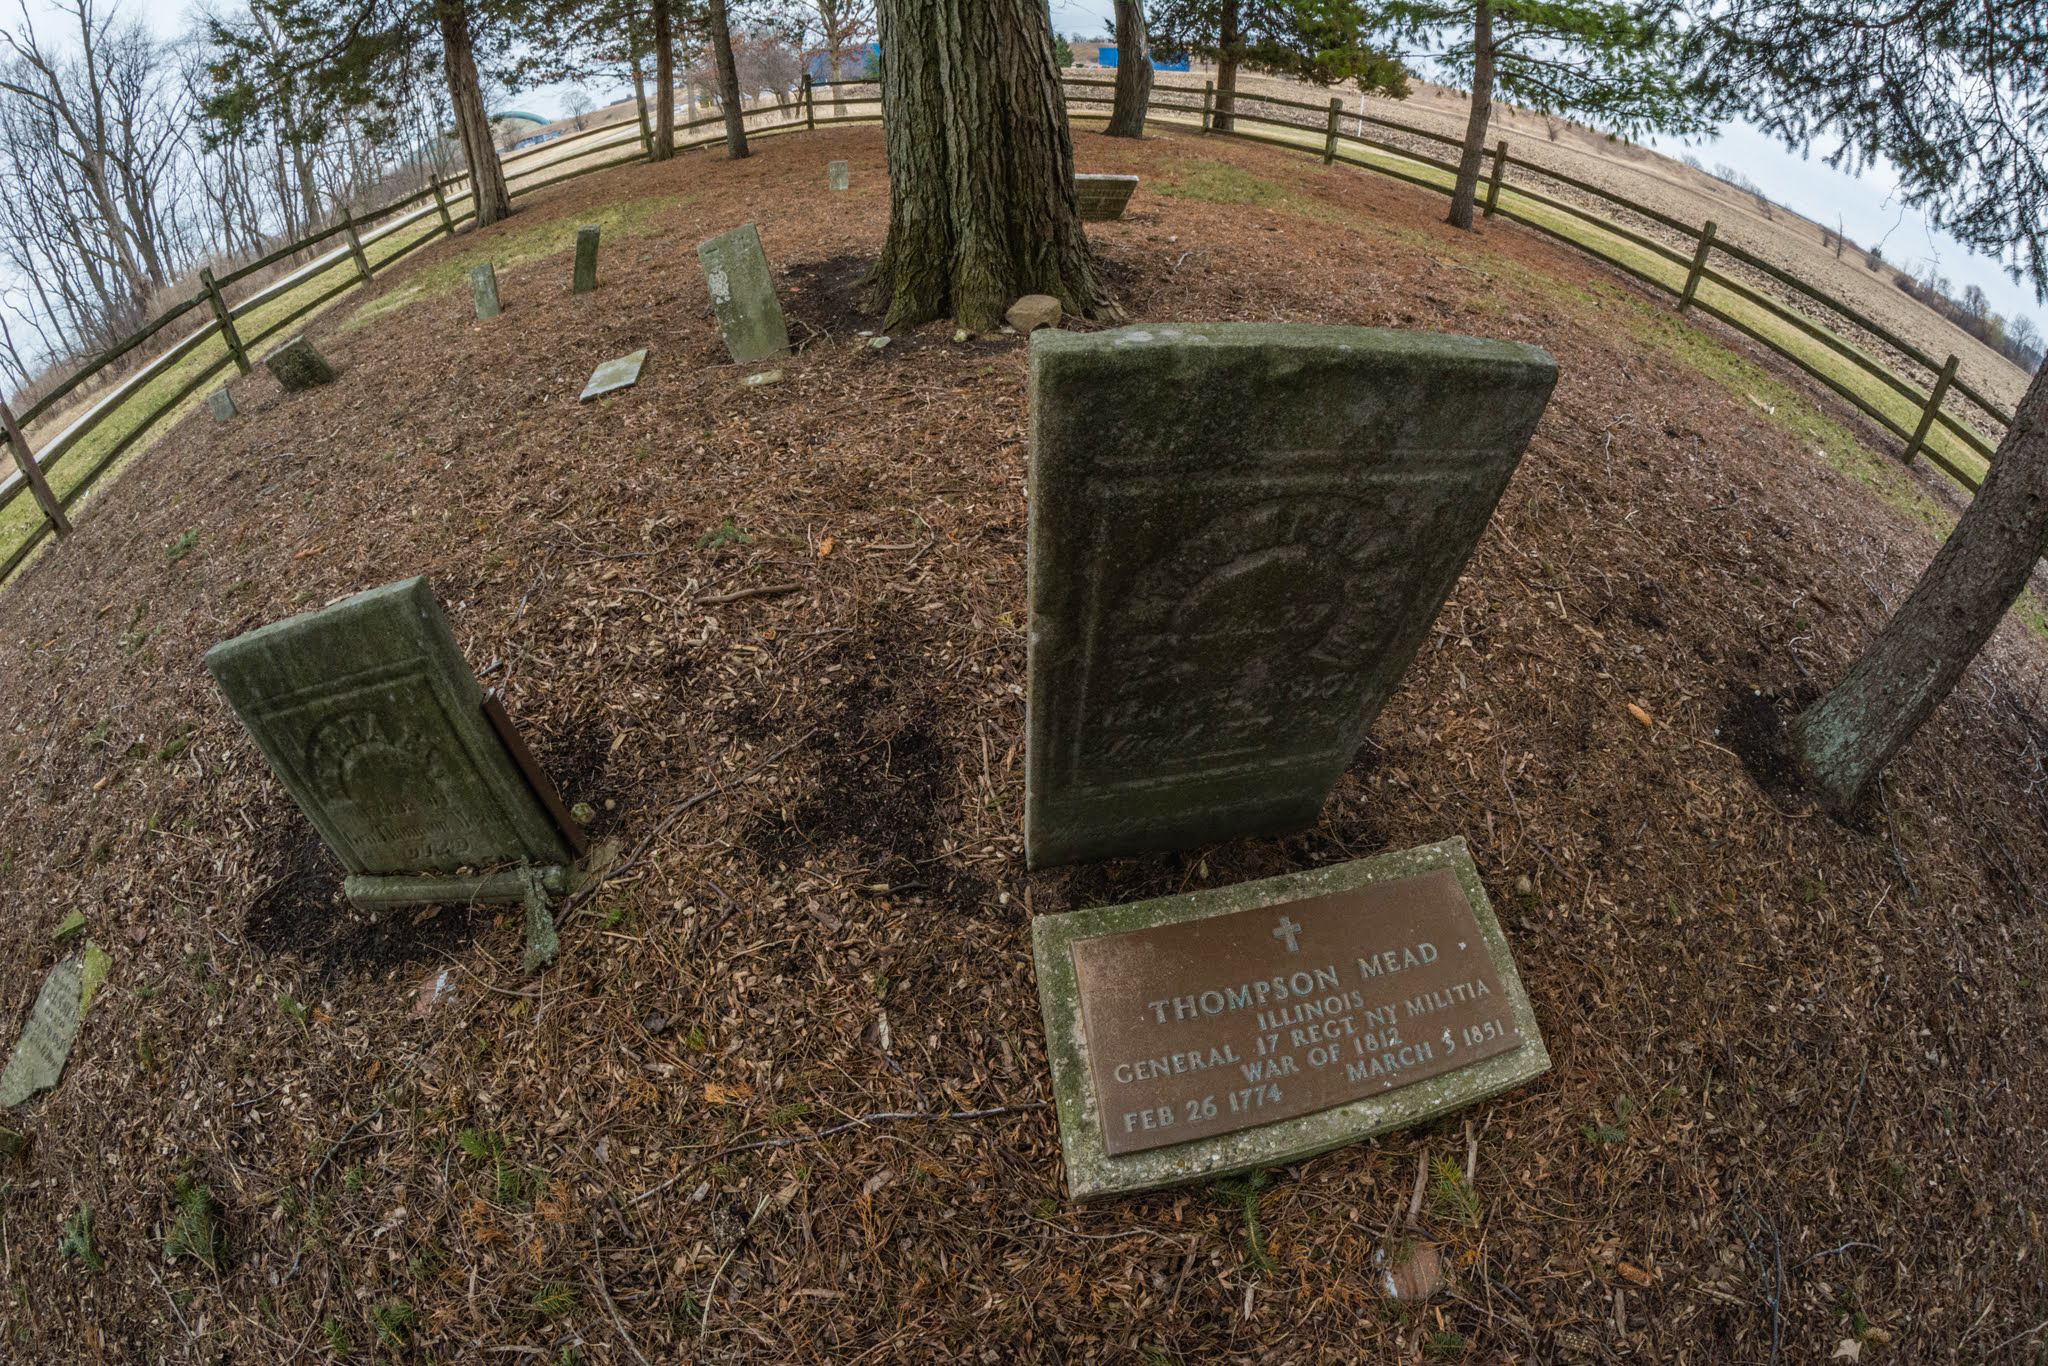 Here's a look at the Fermilab Pioneer Cemetery through a fisheye lens. Photo: Leticia Shaddix